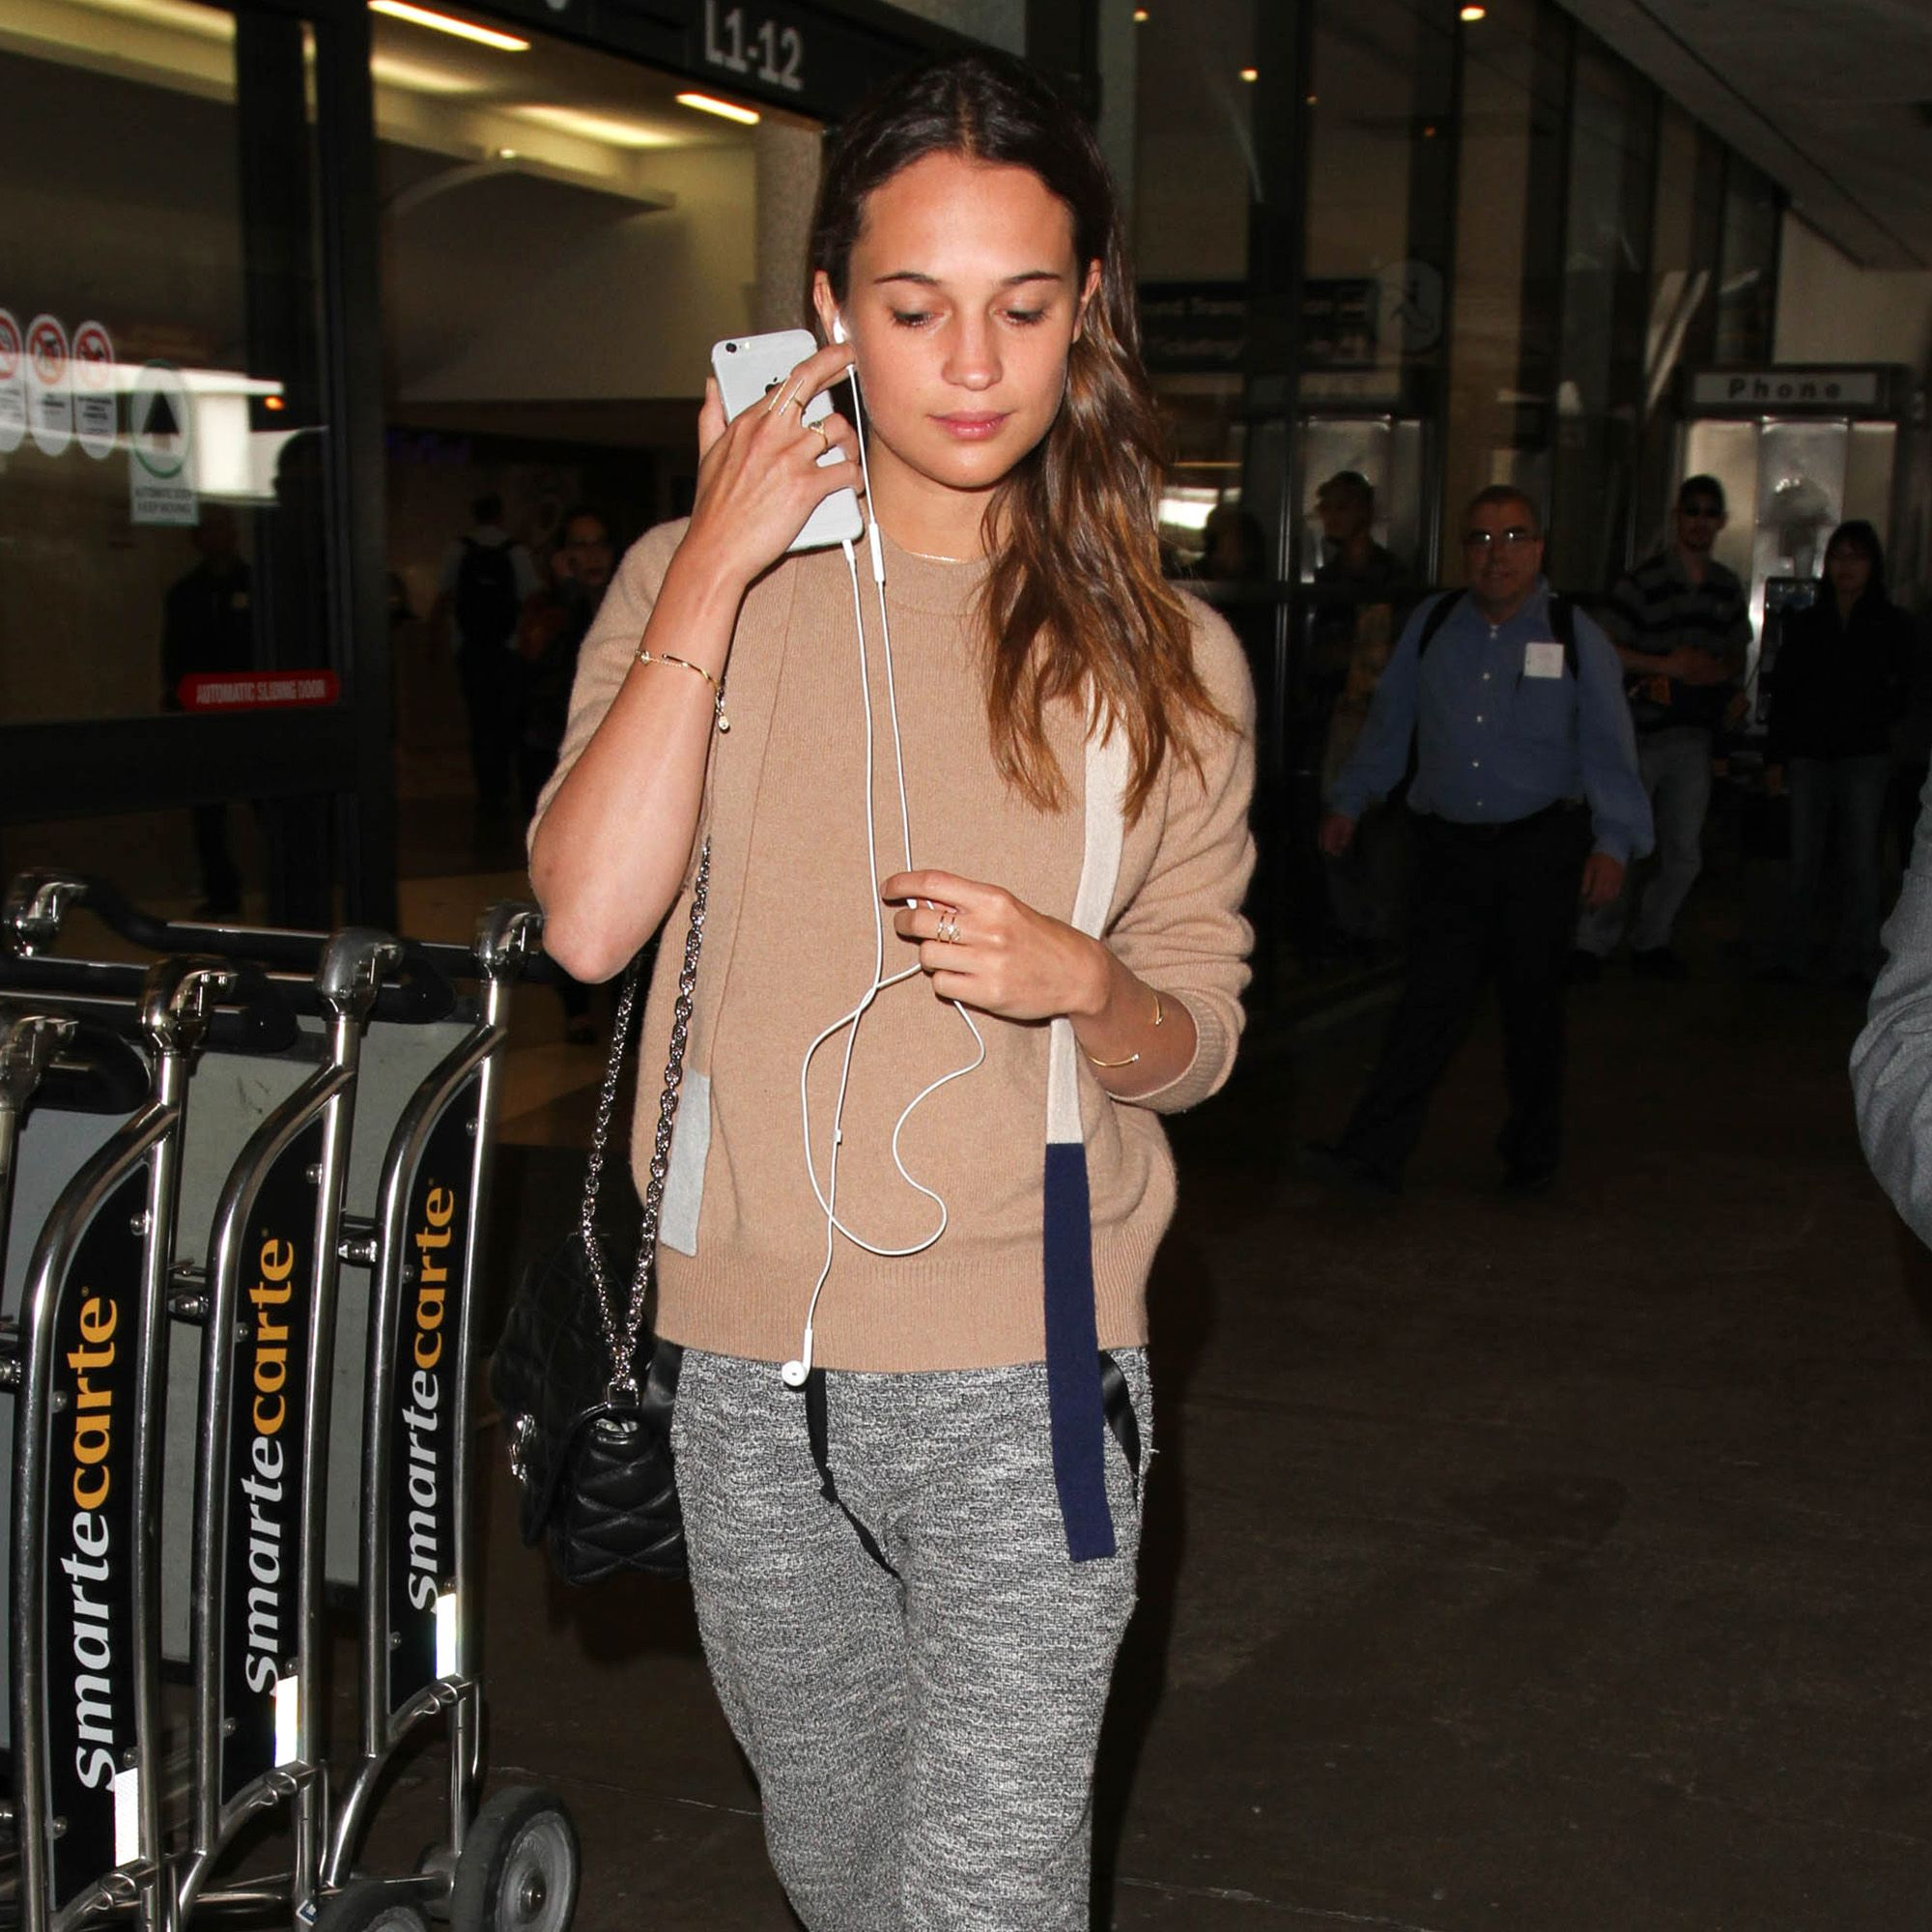 LOS ANGELES, CA - MAY 05: Alicia Vikander seen at LAX on May 05, 2015 in Los Angeles, California.  (Photo by GVK/Bauer-Griffin/GC Images)